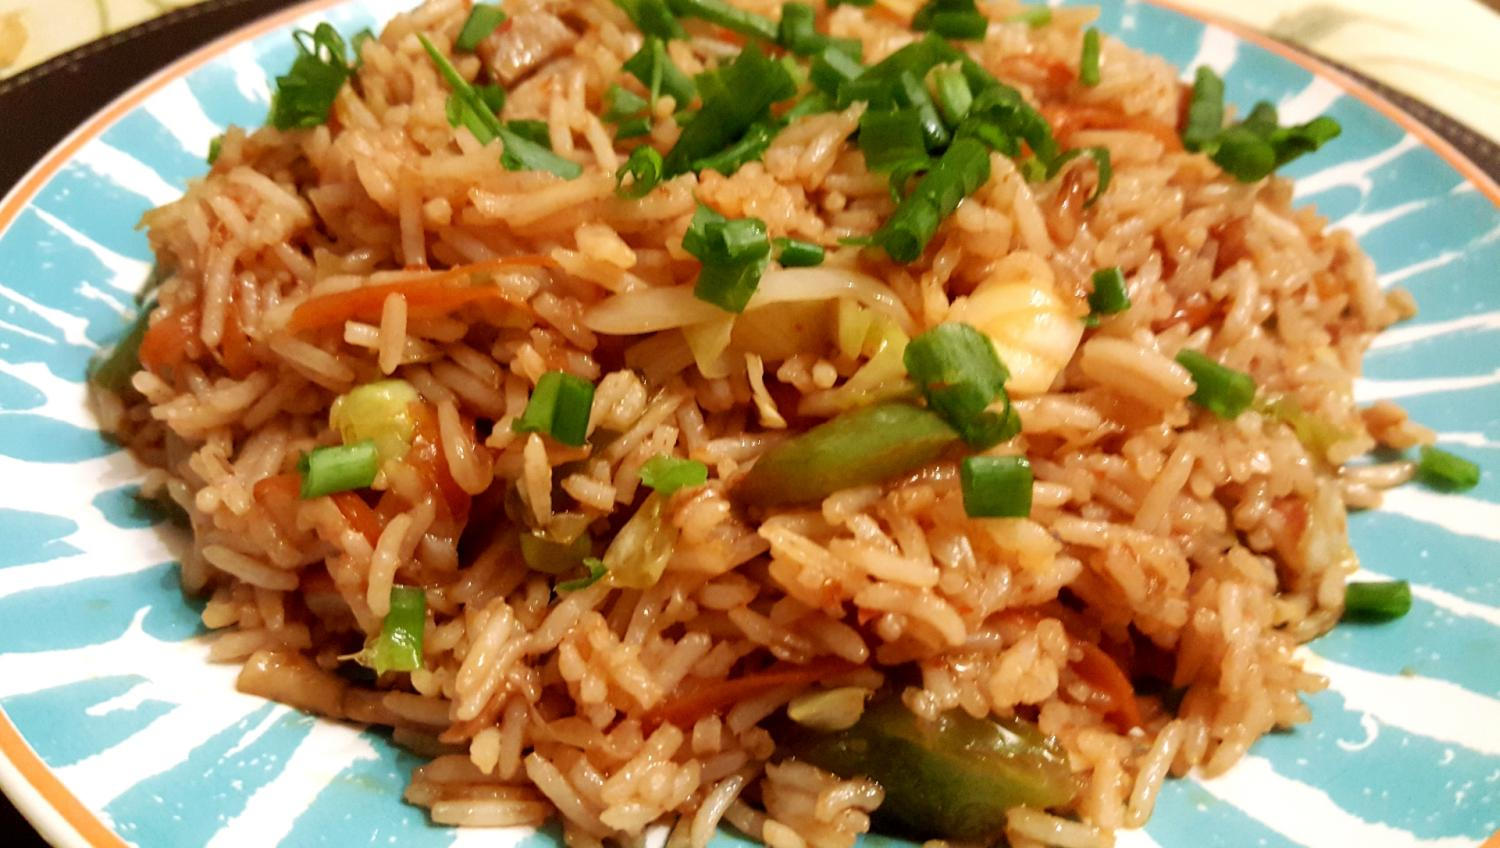 Chilli Garlic Fried Rice